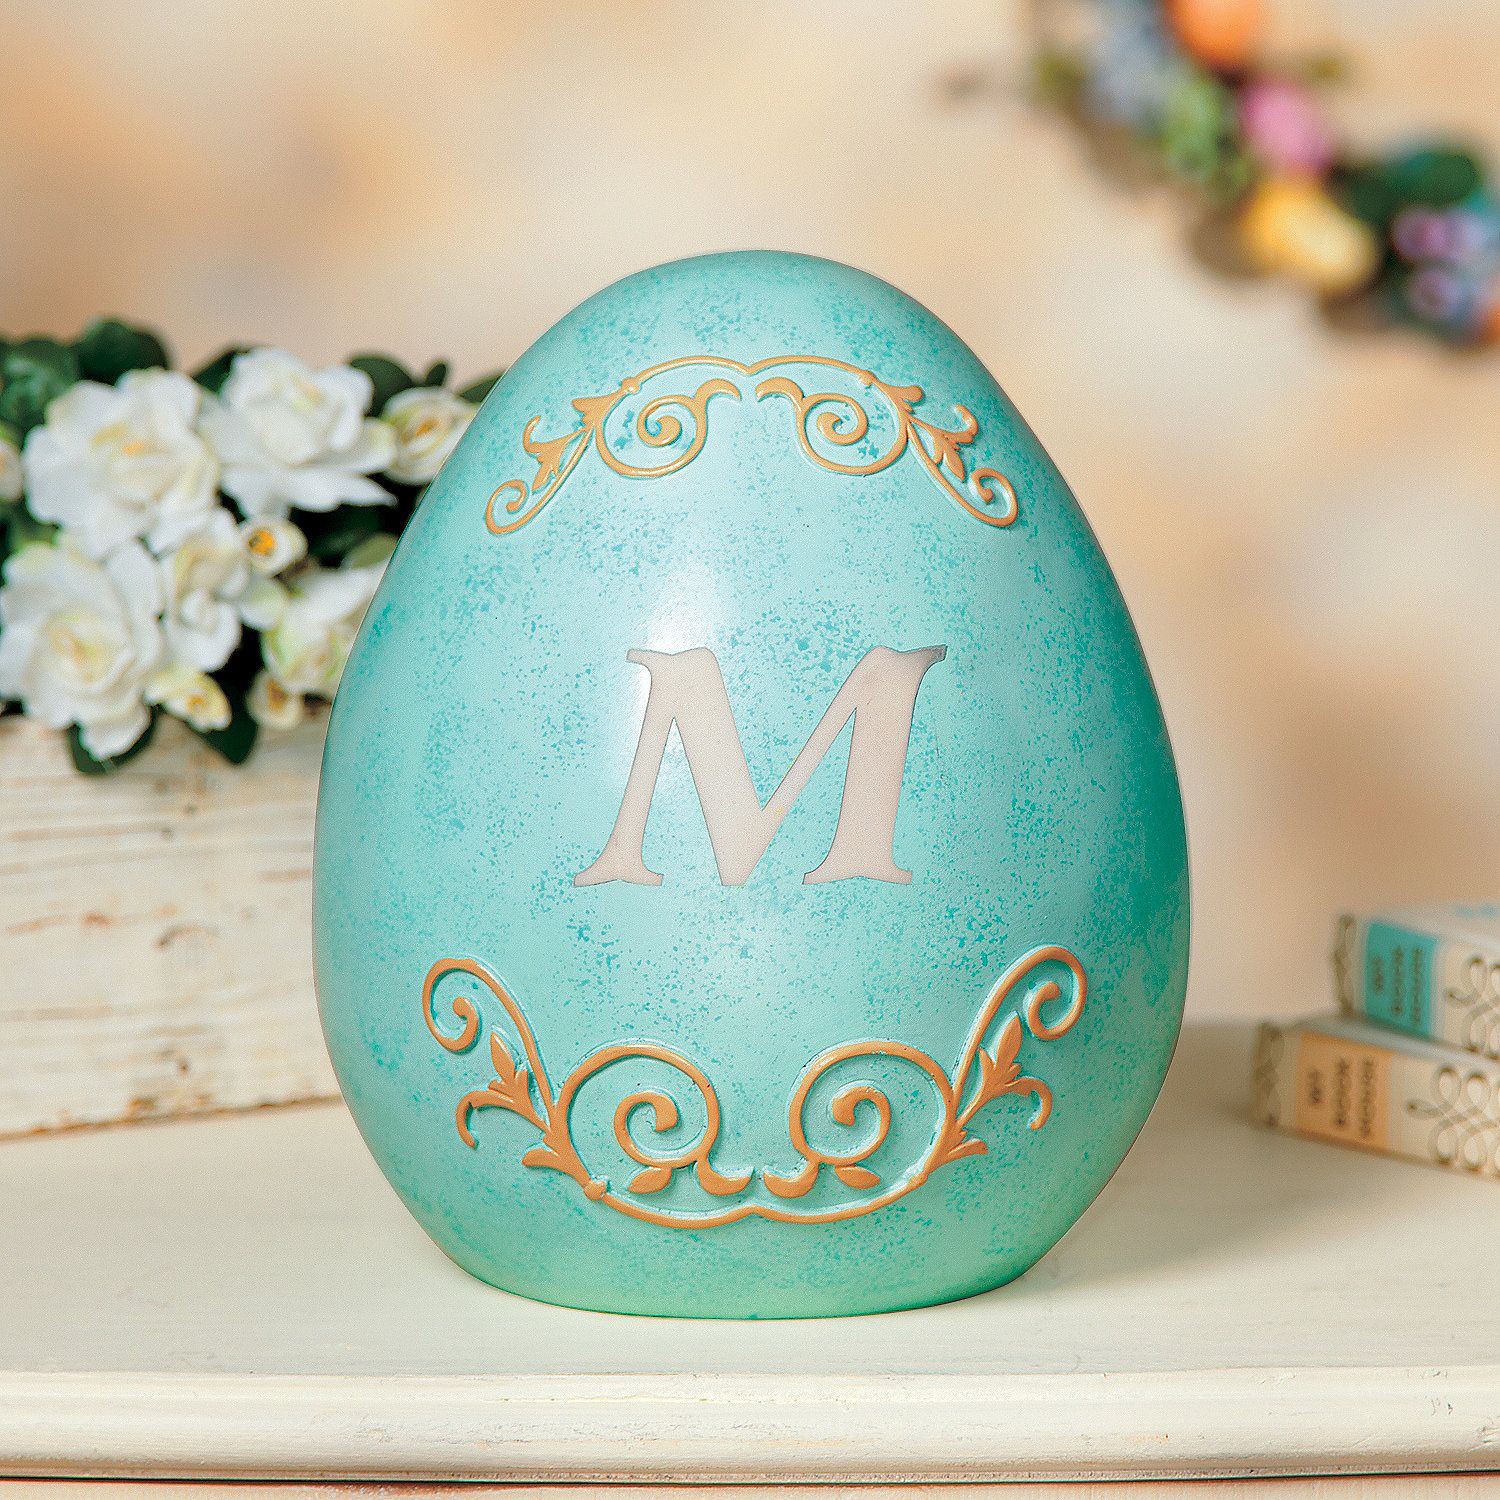 Monogrammed Easter Egg - OrientalTrading.com - Personalize this blue Easter egg décor with a one-letter monogram to create an Easter decoration you'll treasure for years to come or give one as an Easter gift.